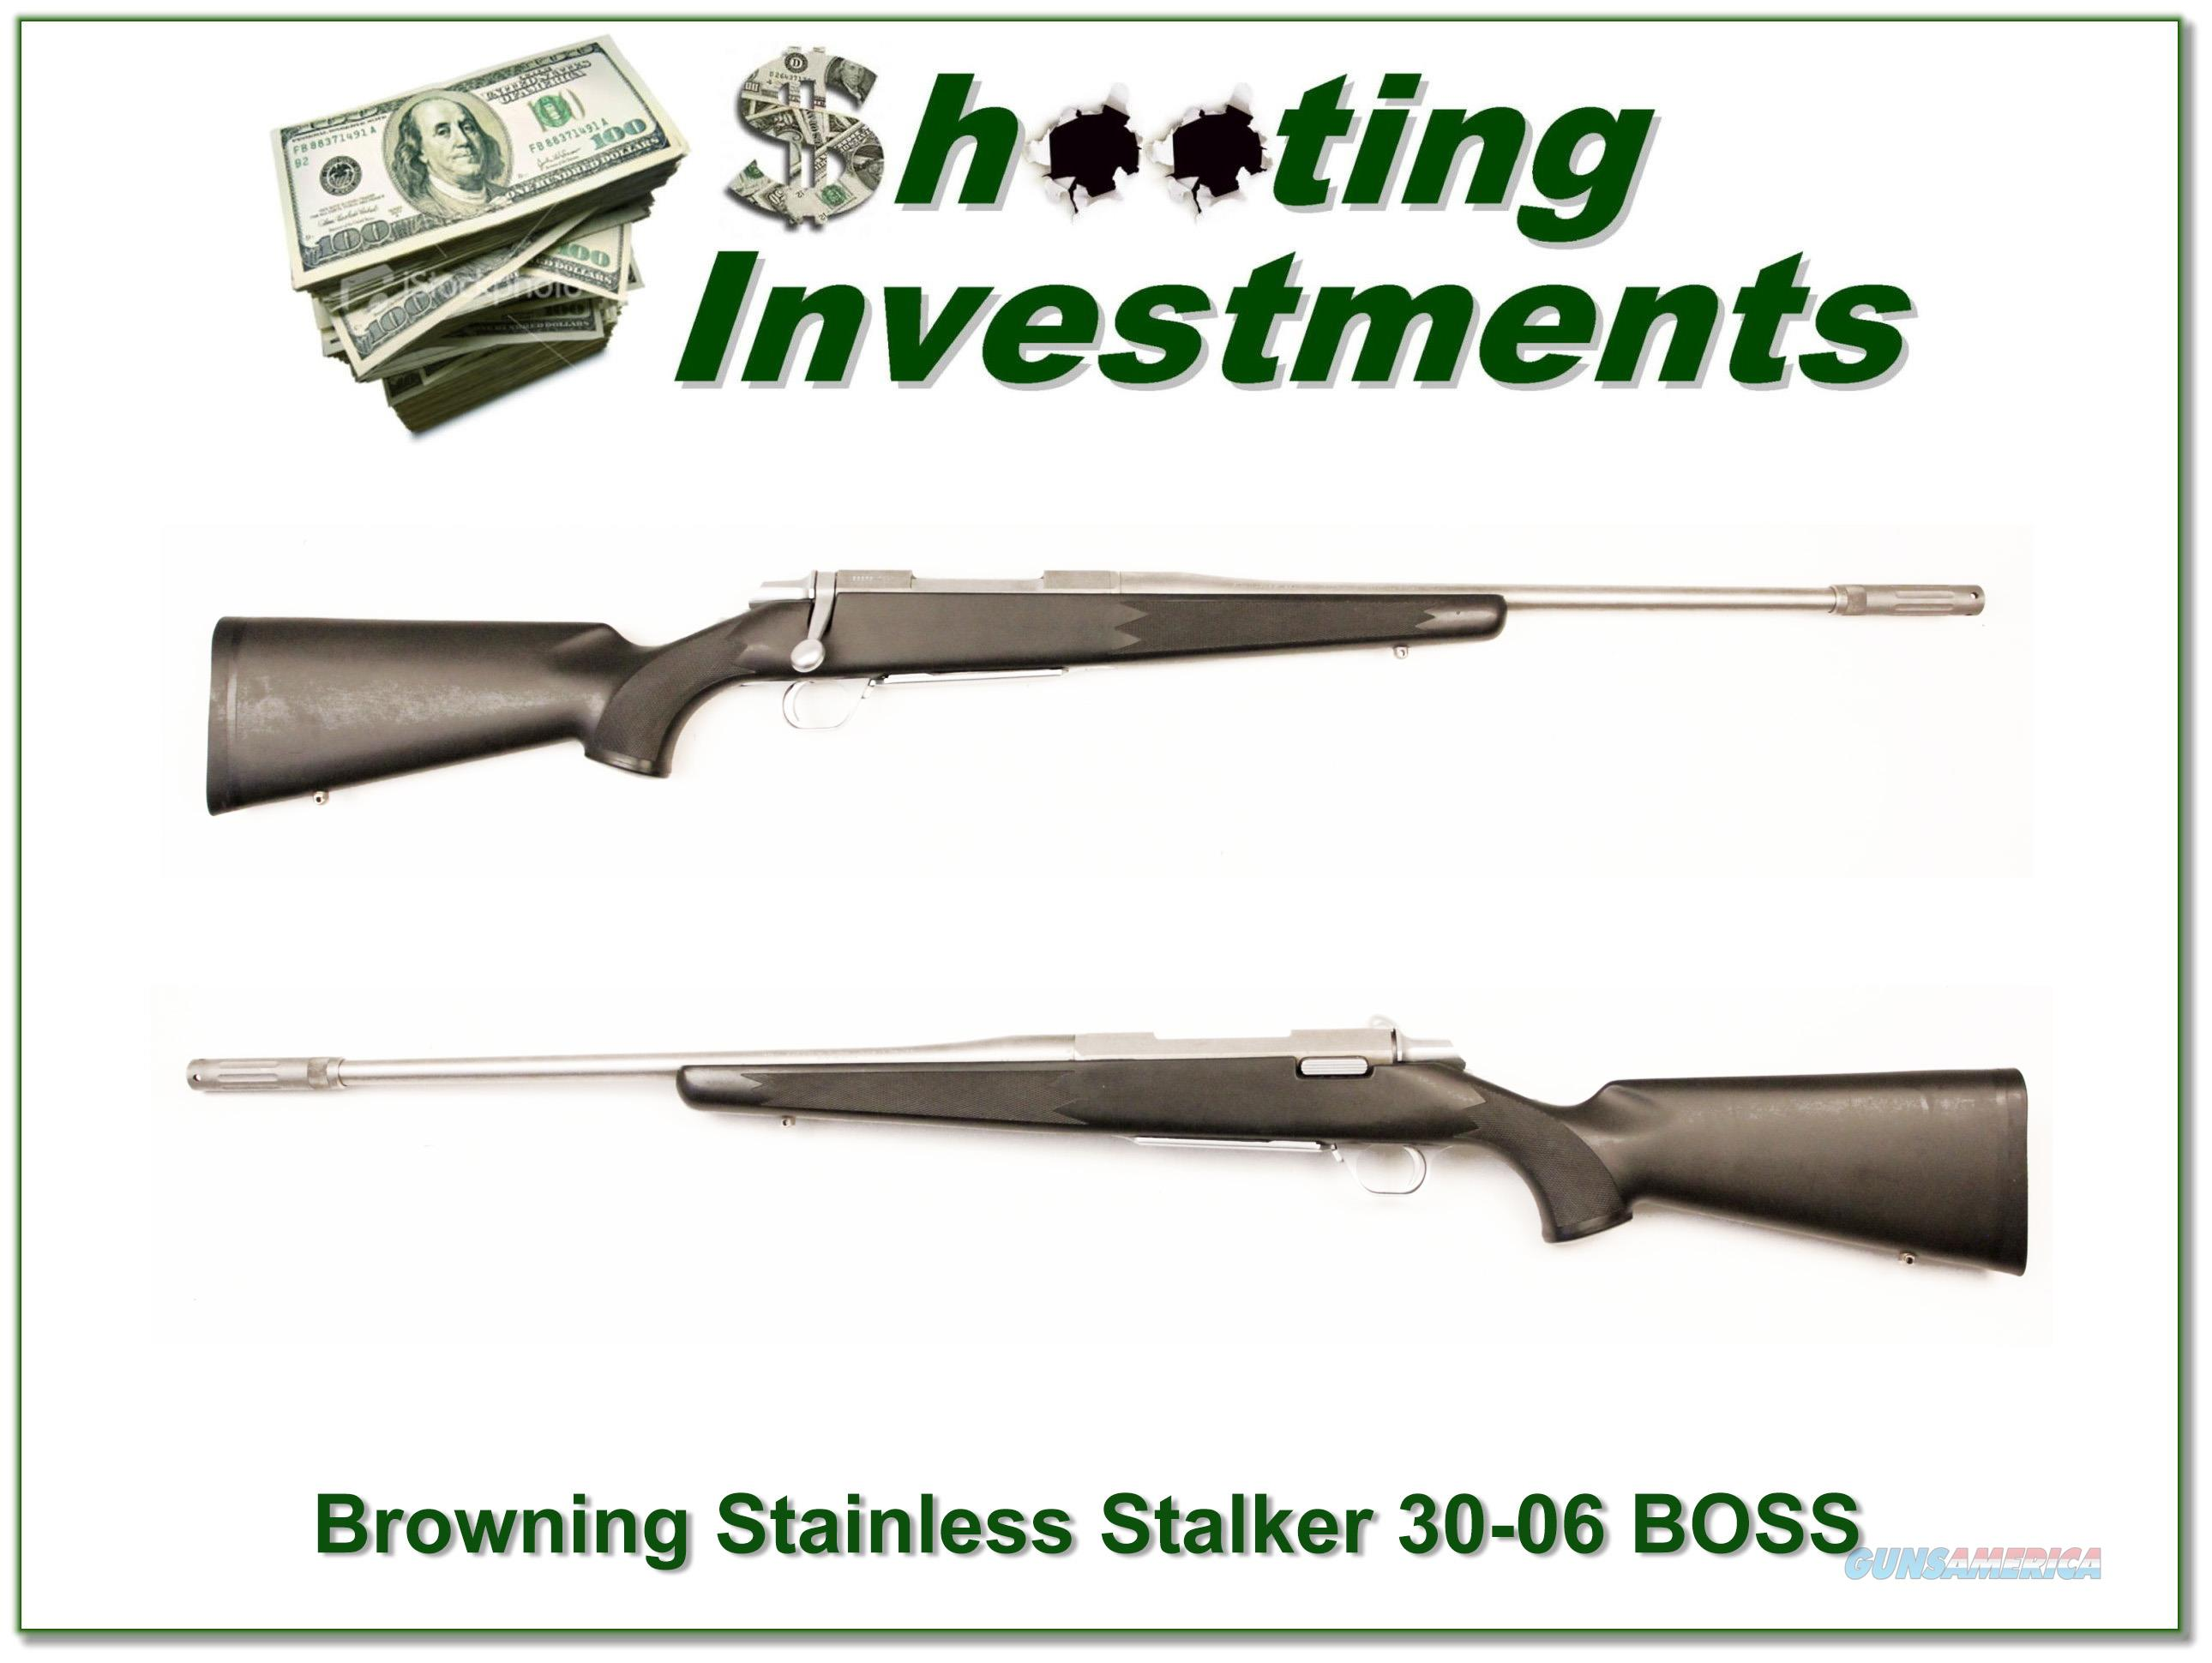 Browining A-bolt II Stainless Stalker with BOSS in 30-06  Guns > Rifles > Browning Rifles > Bolt Action > Hunting > Stainless